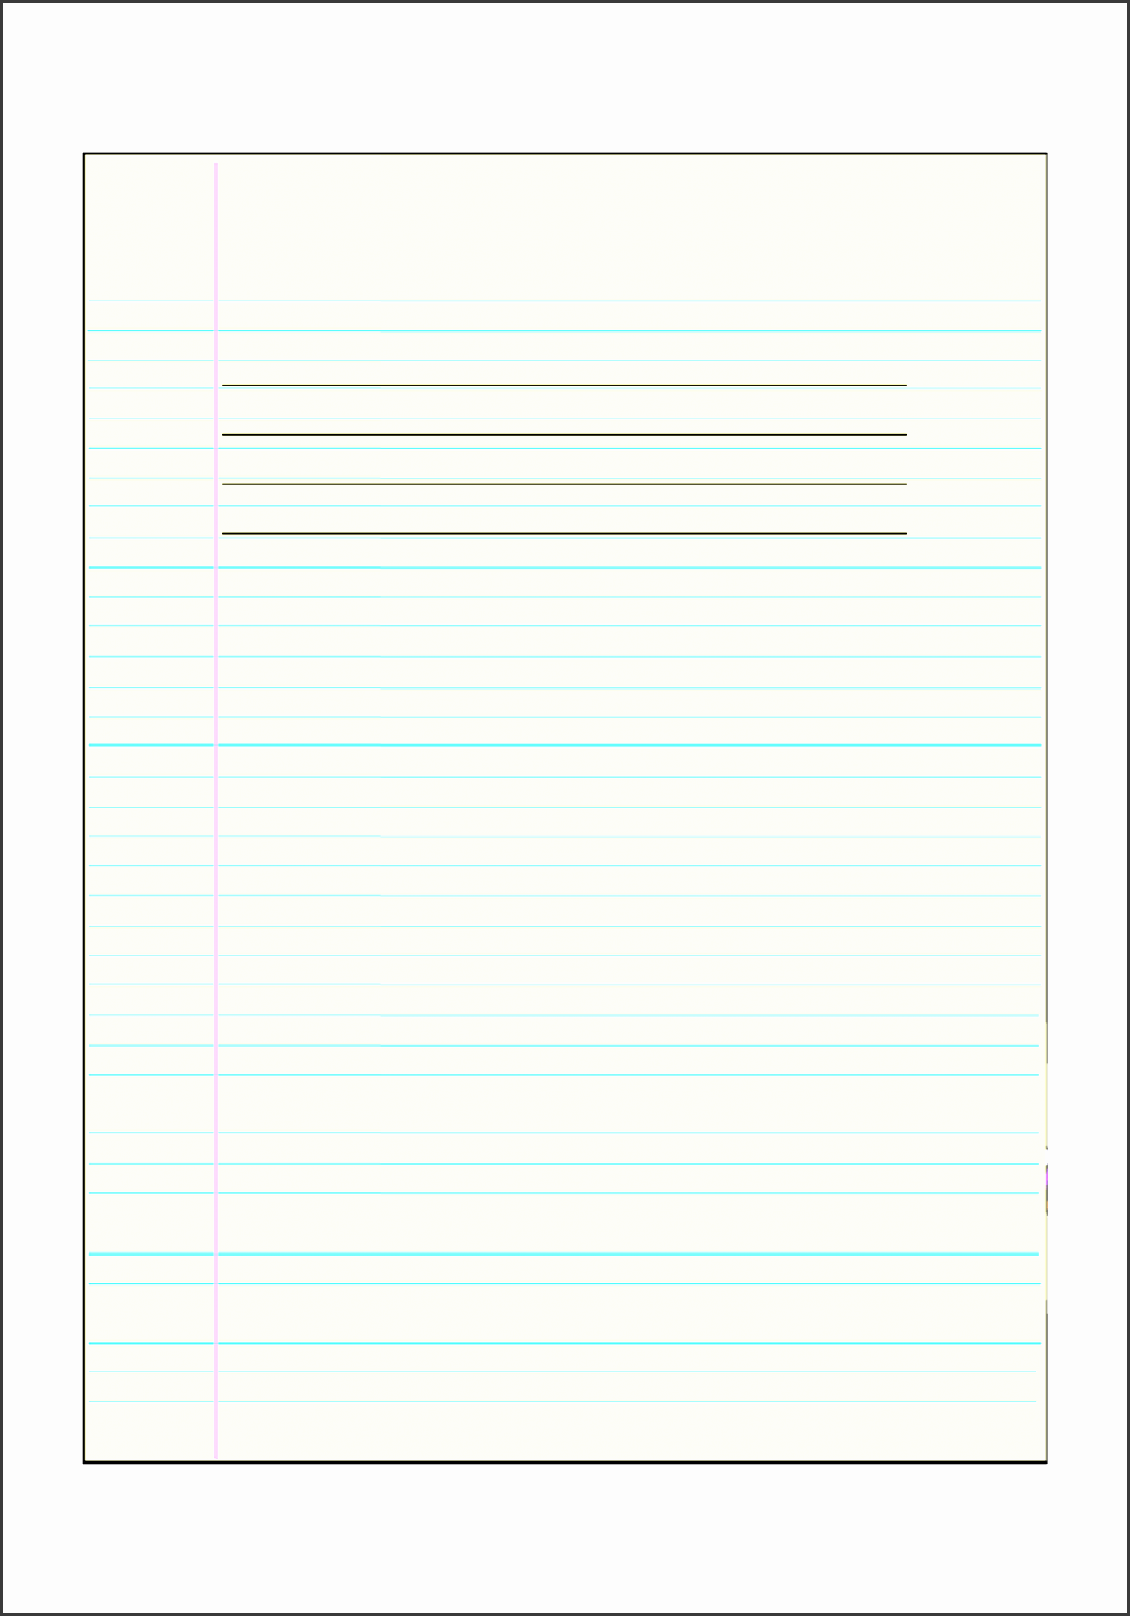 6 personal fax cover sheet template